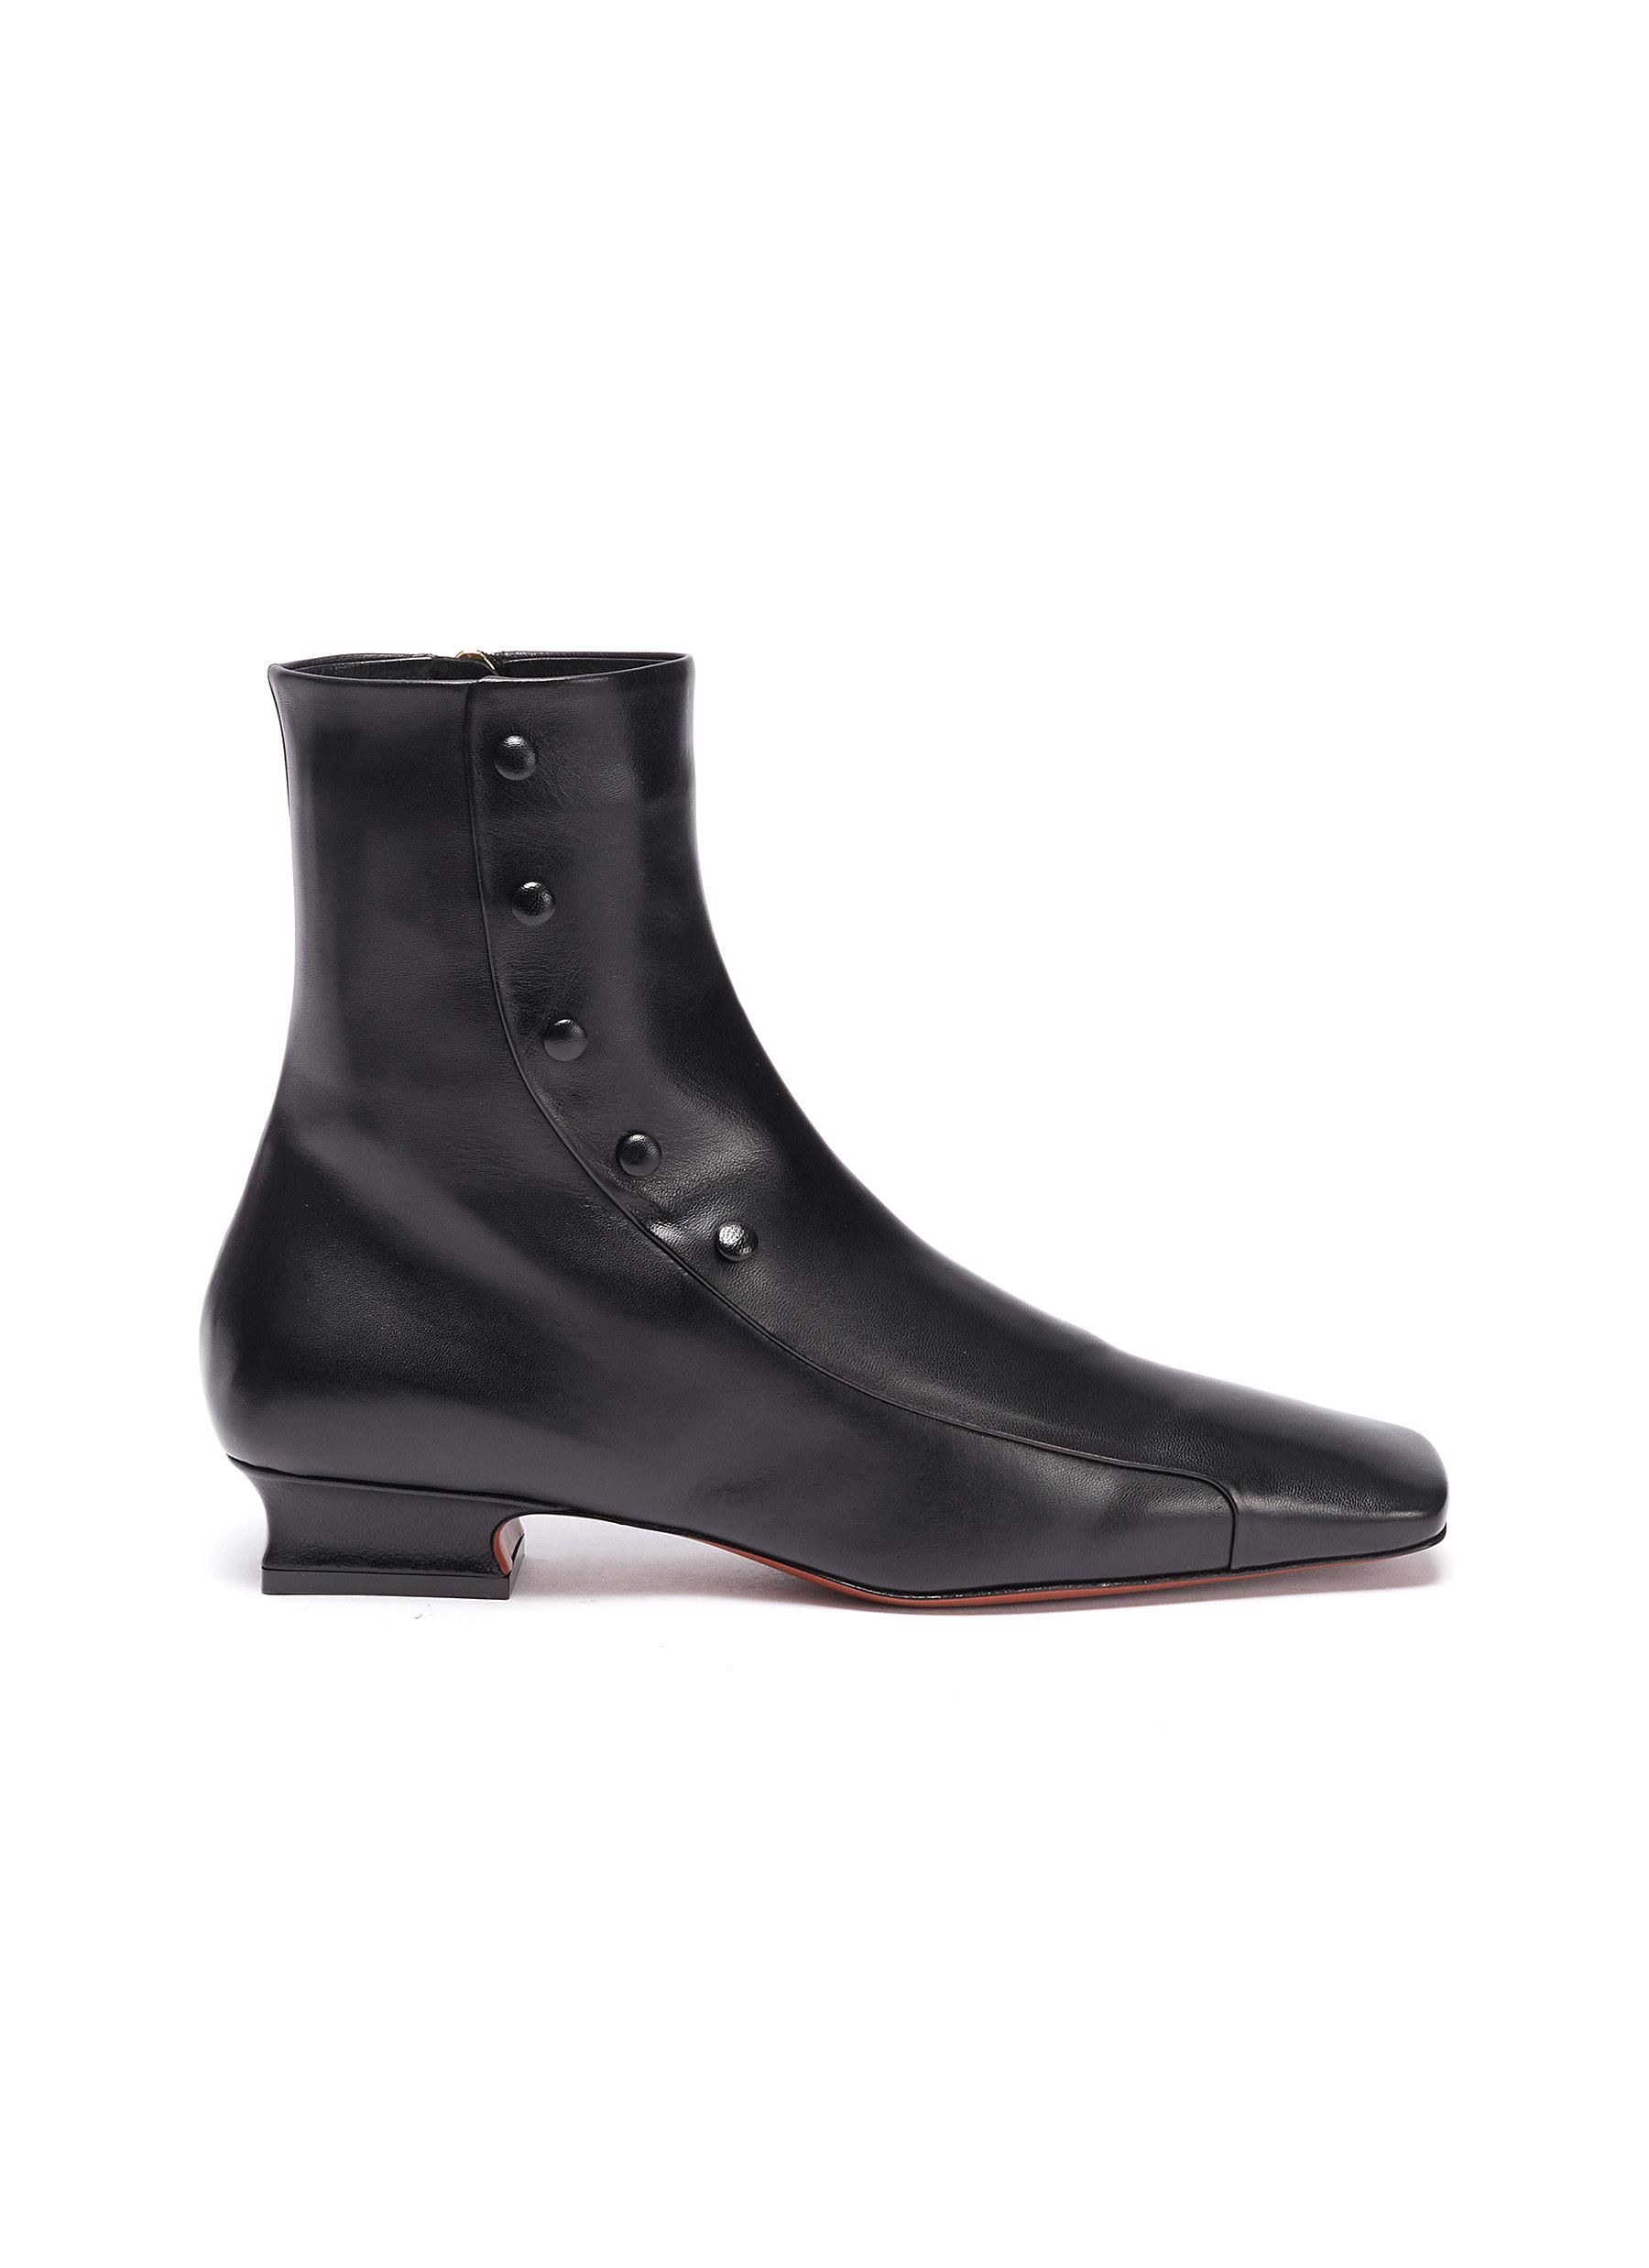 Manu Atelier 'DUCK' BLOCK HEEL BUTTON LEATHER ANKLE BOOTS